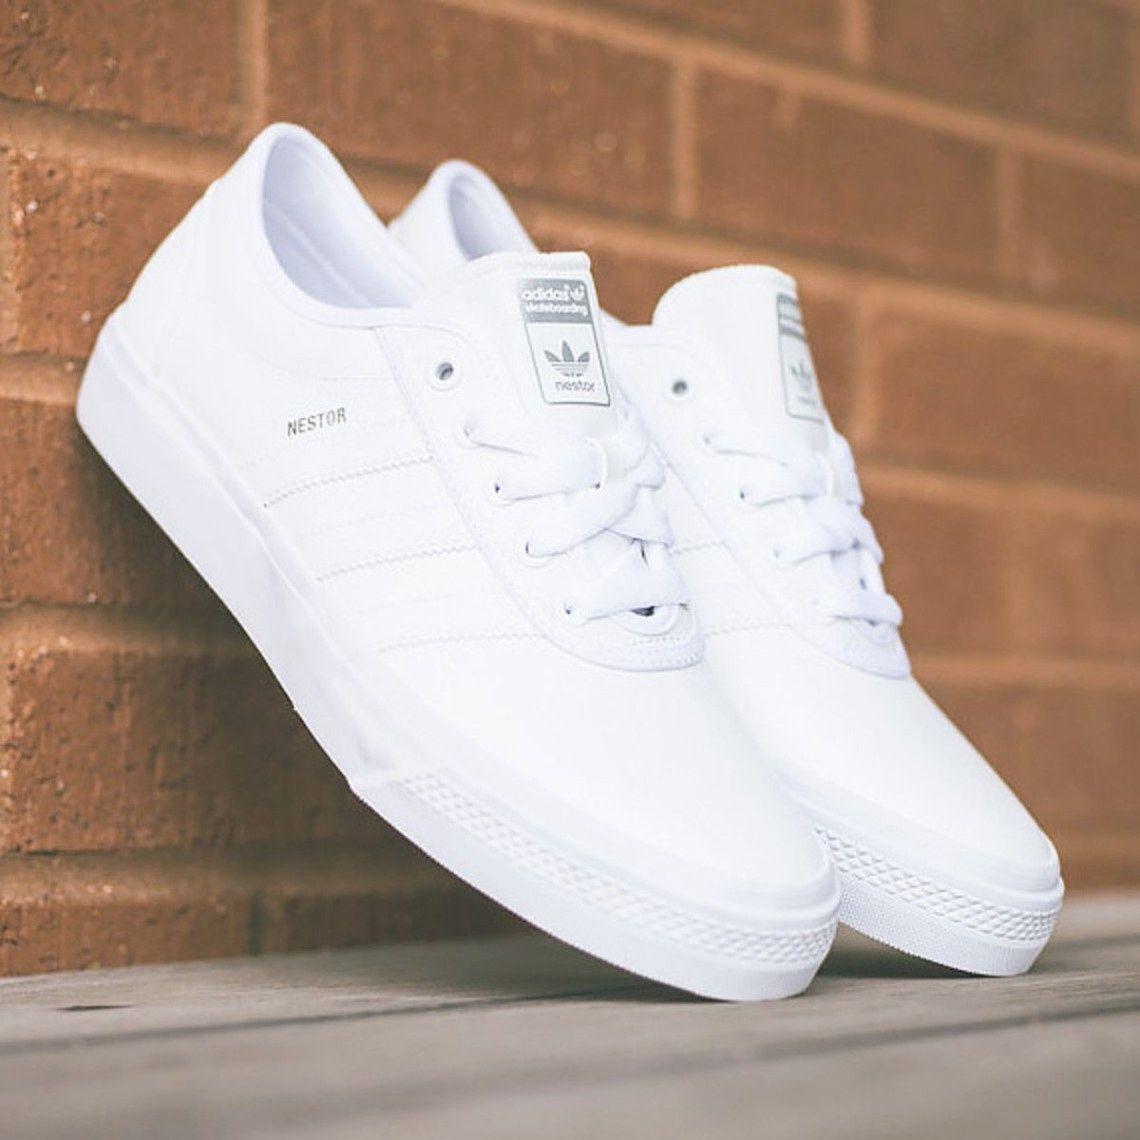 Adidas white shoes, Sneakers